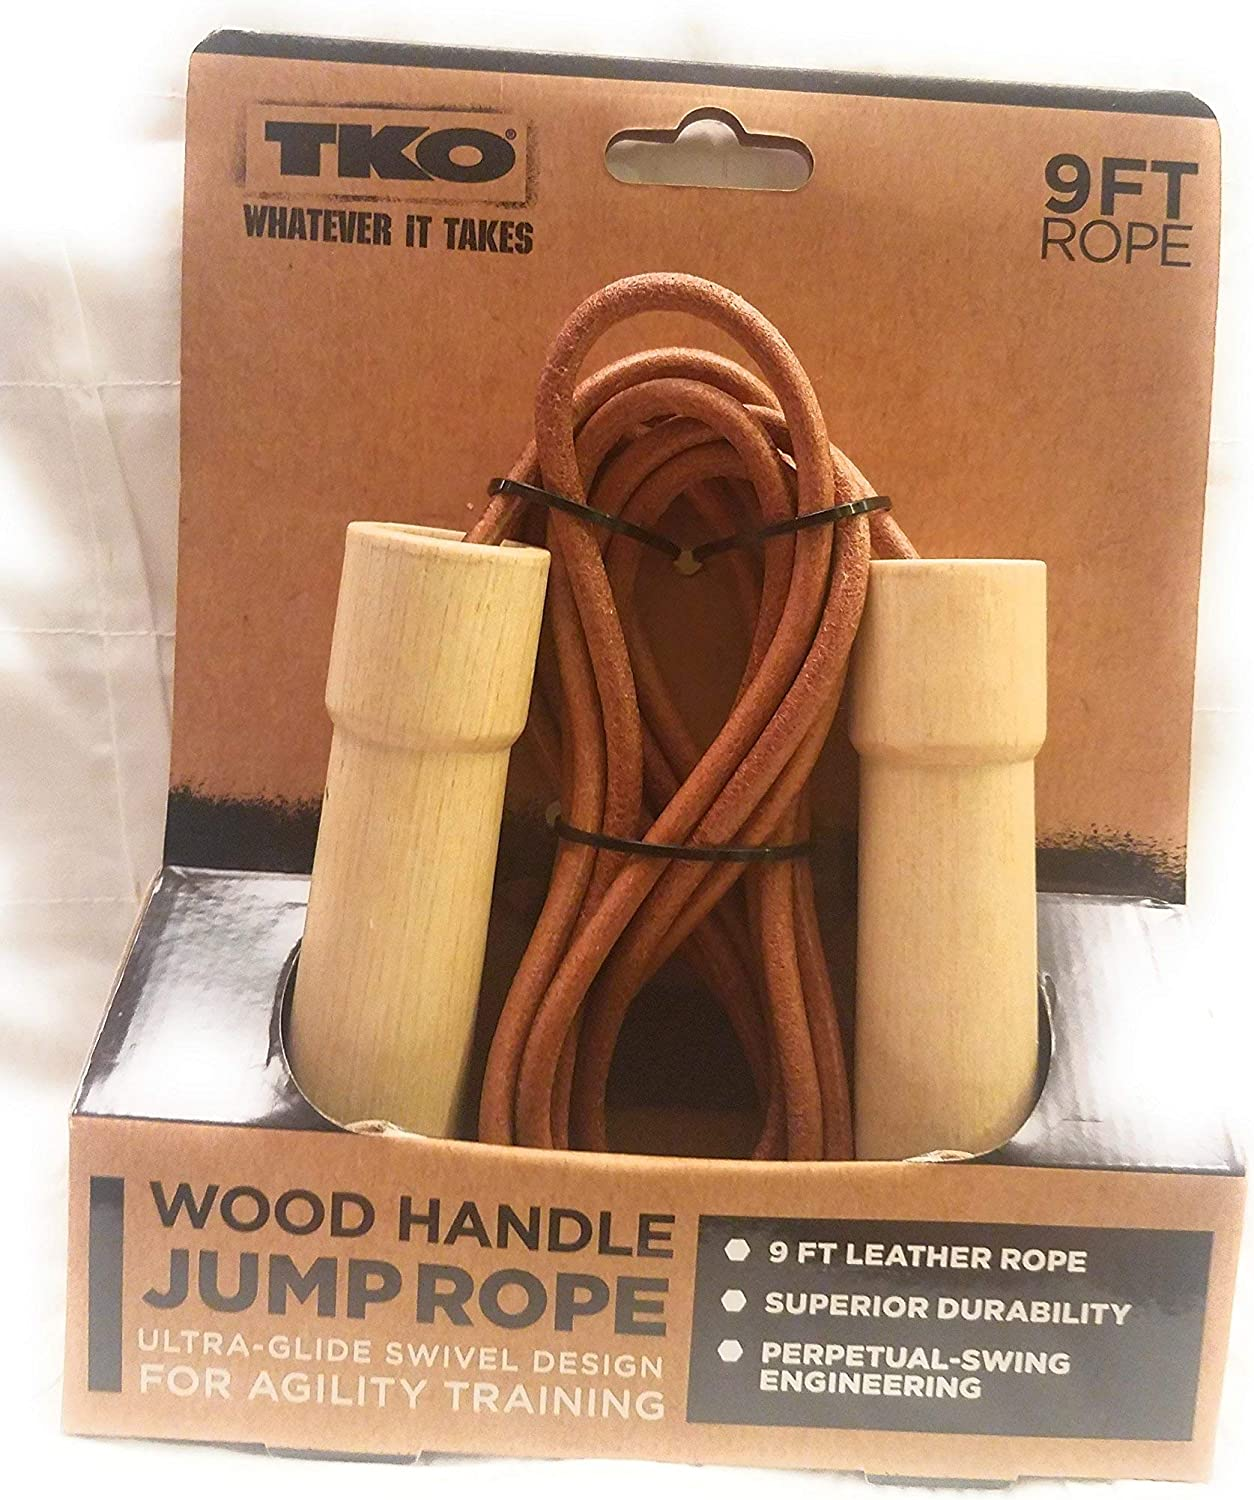 TKO Whatever It Takes High Speed Jump Rope Wildberry 9 ft environ 2.74 m